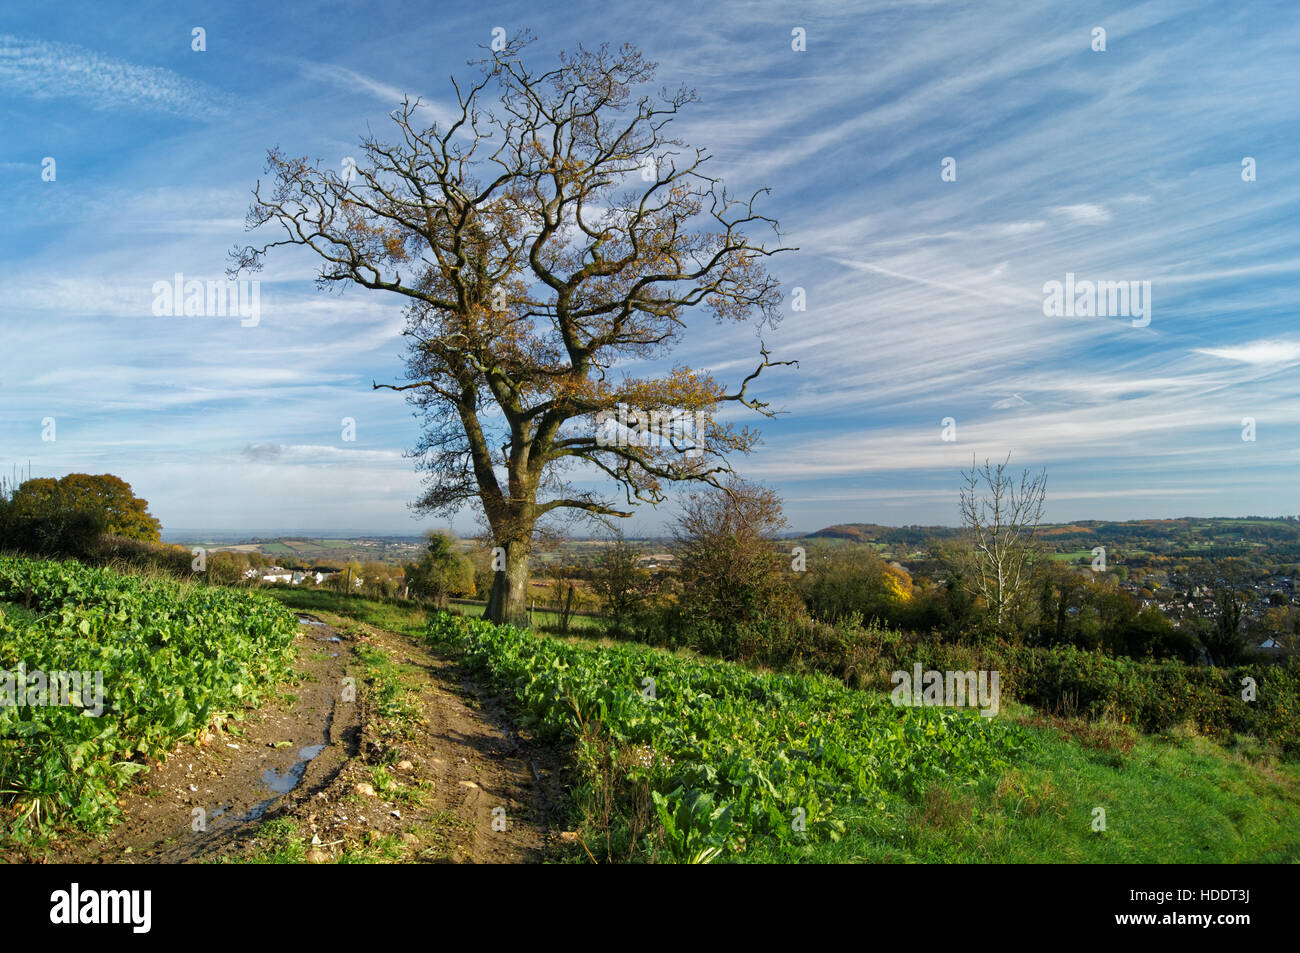 UK,Somerset,Chard,Countryside above Crimchard Looking Towards Sprays Hill - Stock Image